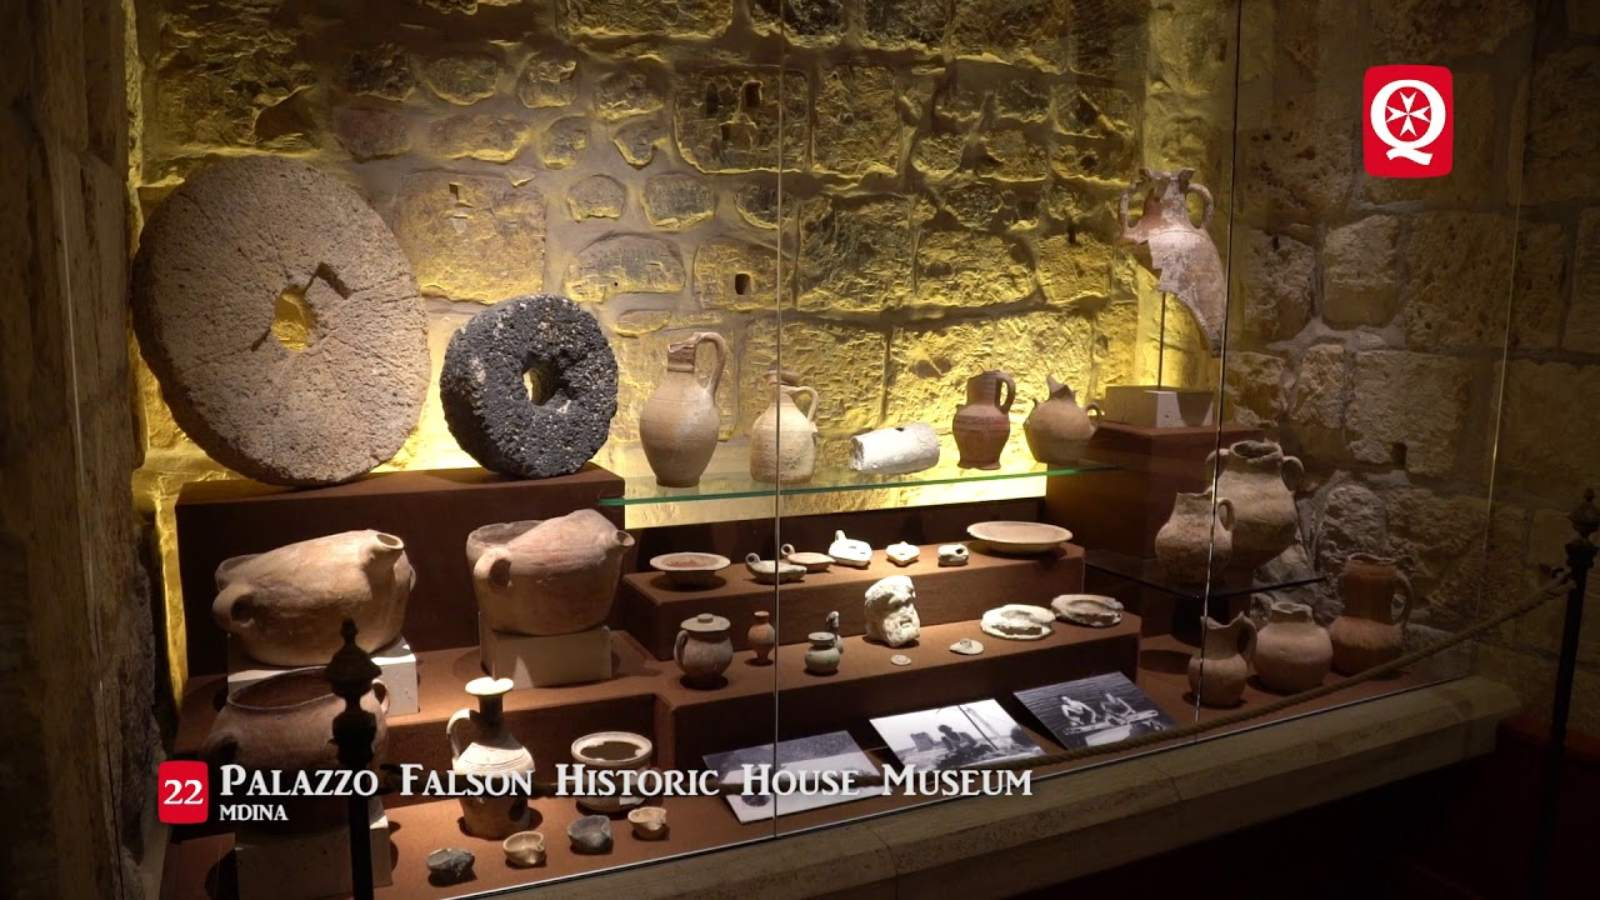 Miller Retail operating Palazzo Falson's Museum Shop in Mdina